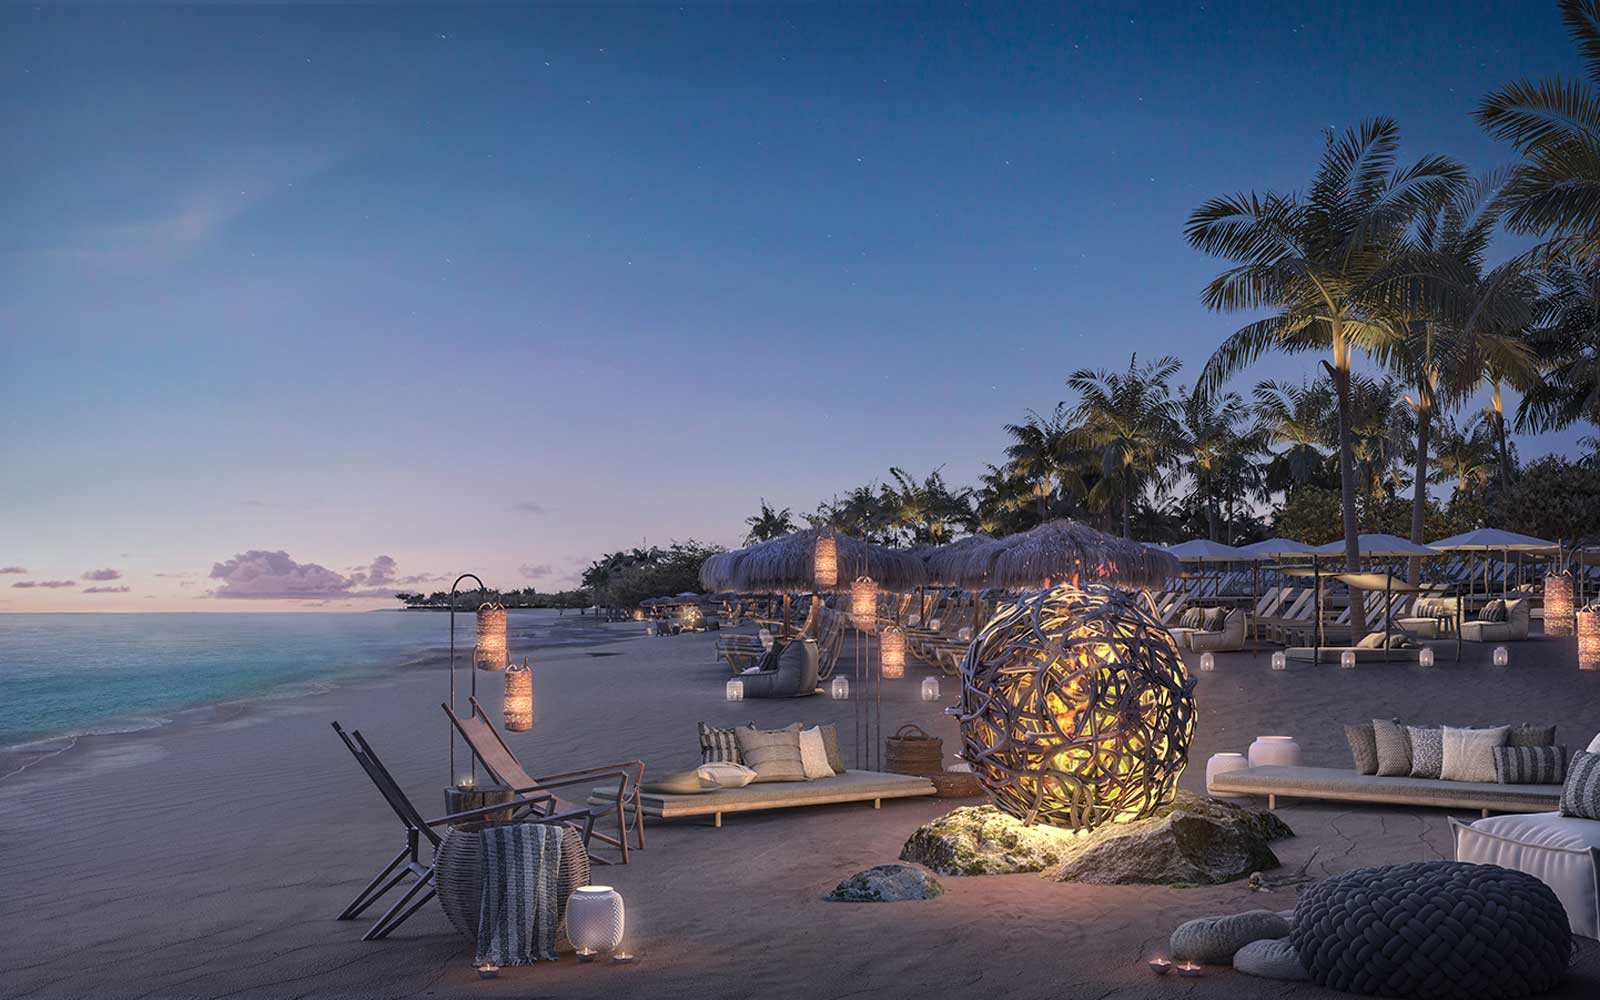 The Beach Club at Binimi (Image courtesy of Virgin Voyages)